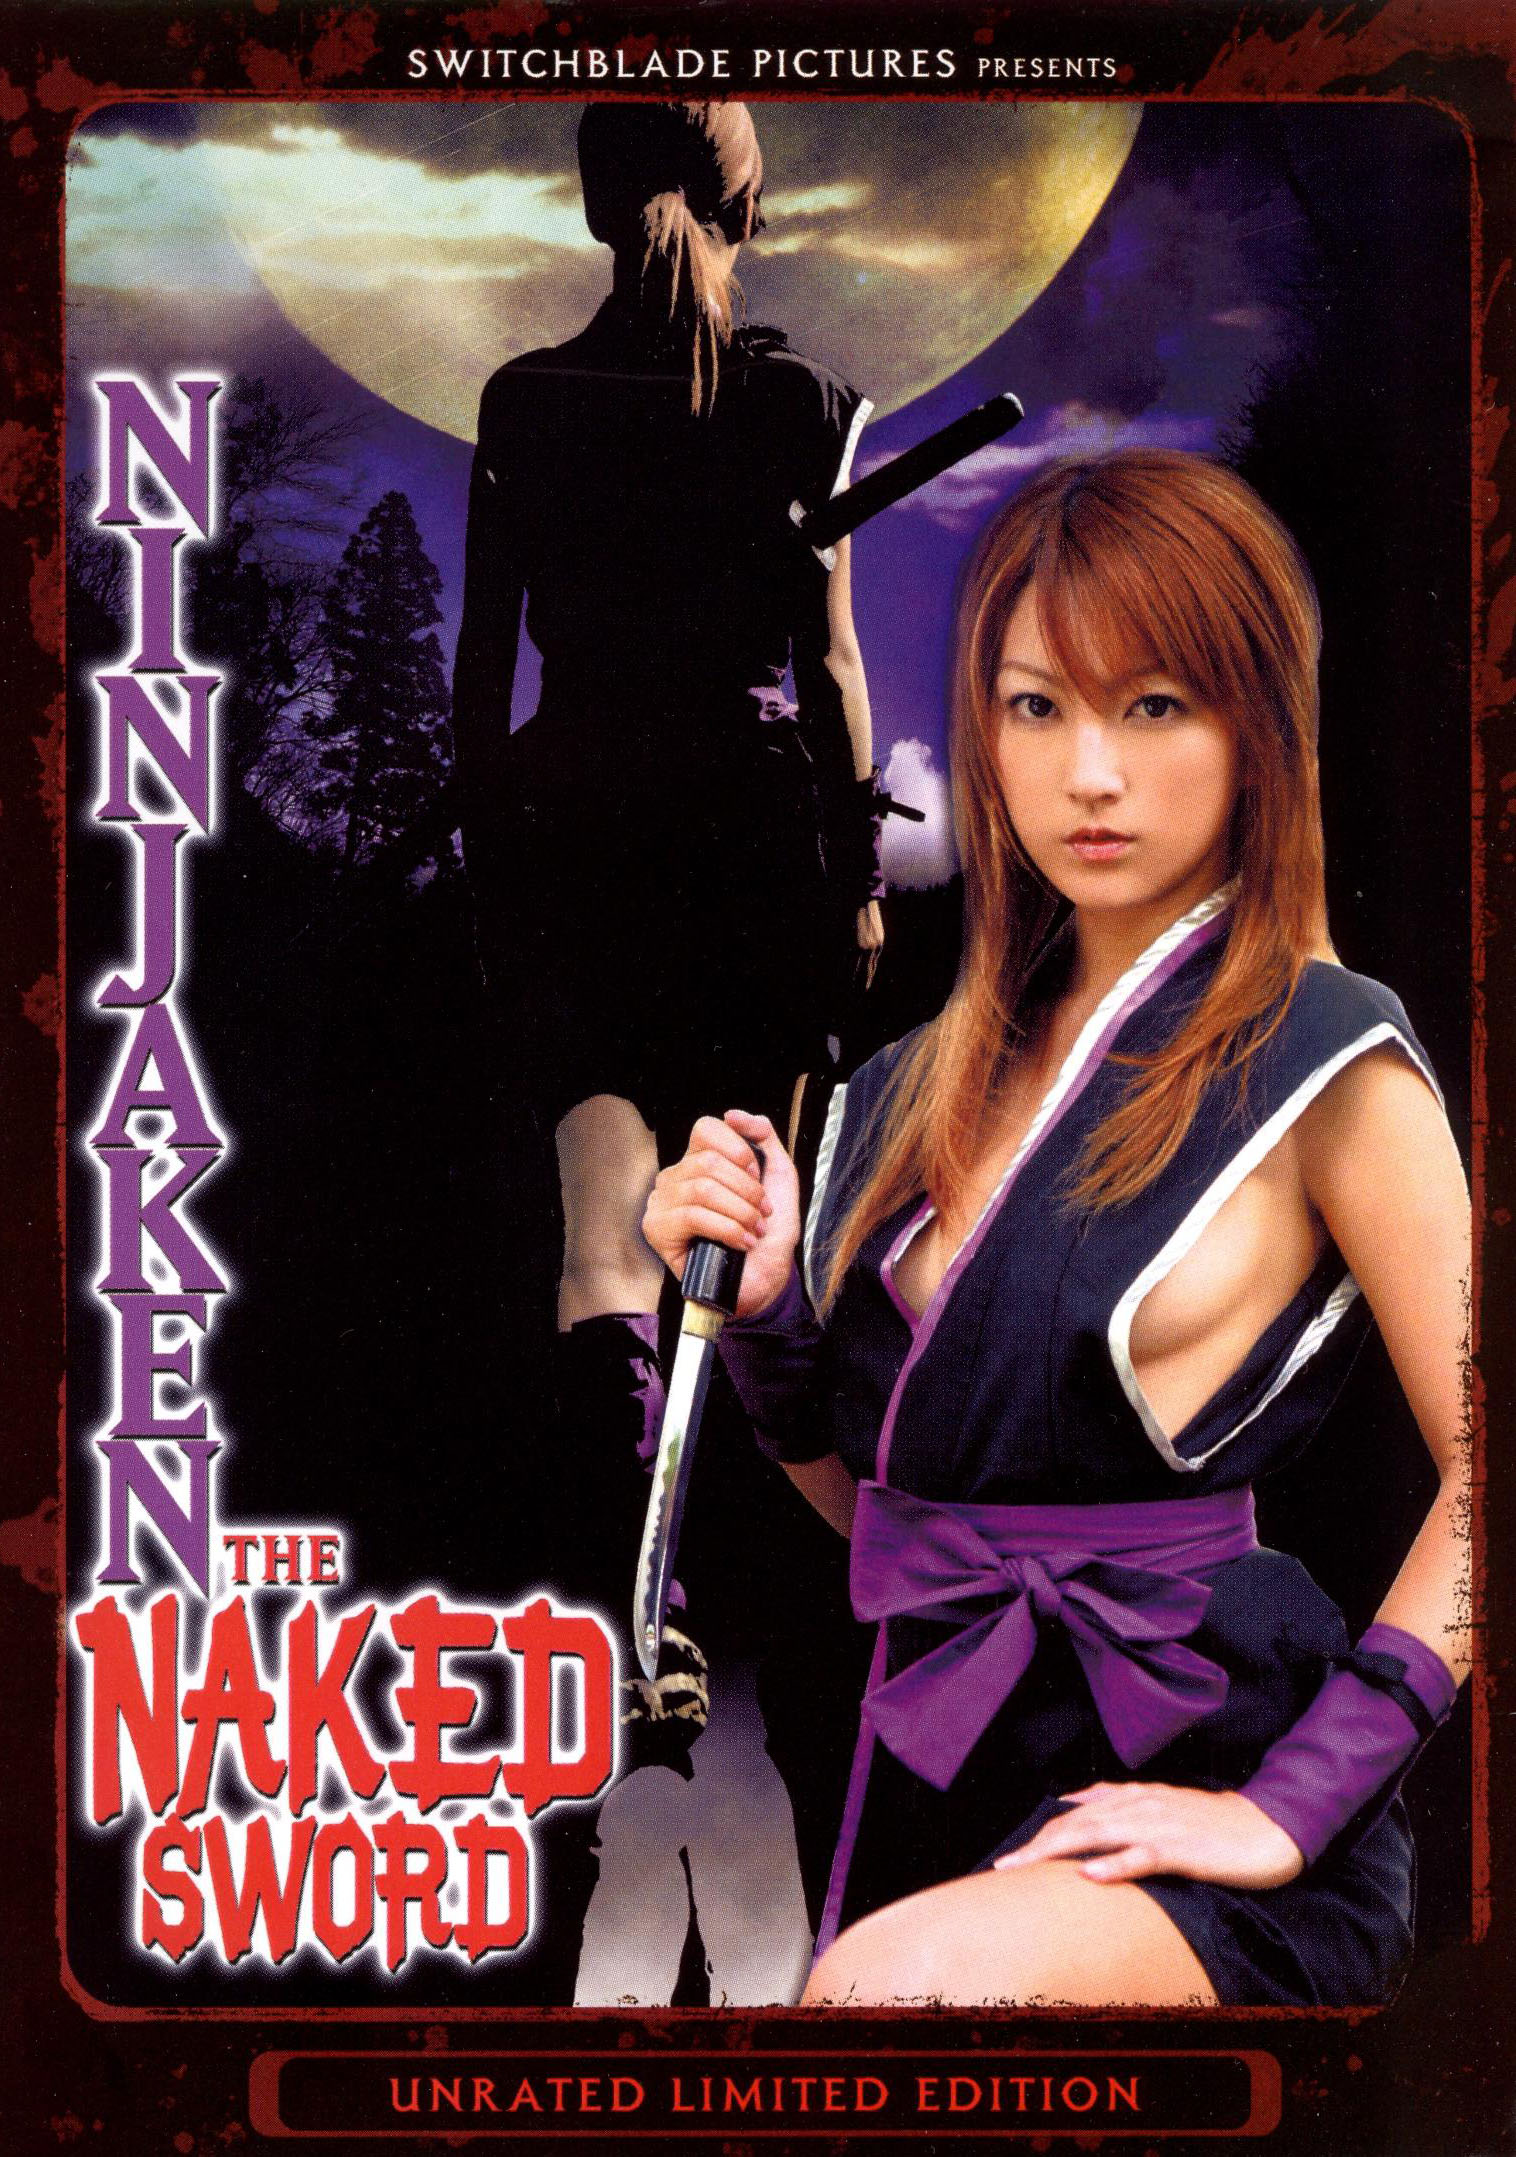 ninjaken the naked sword